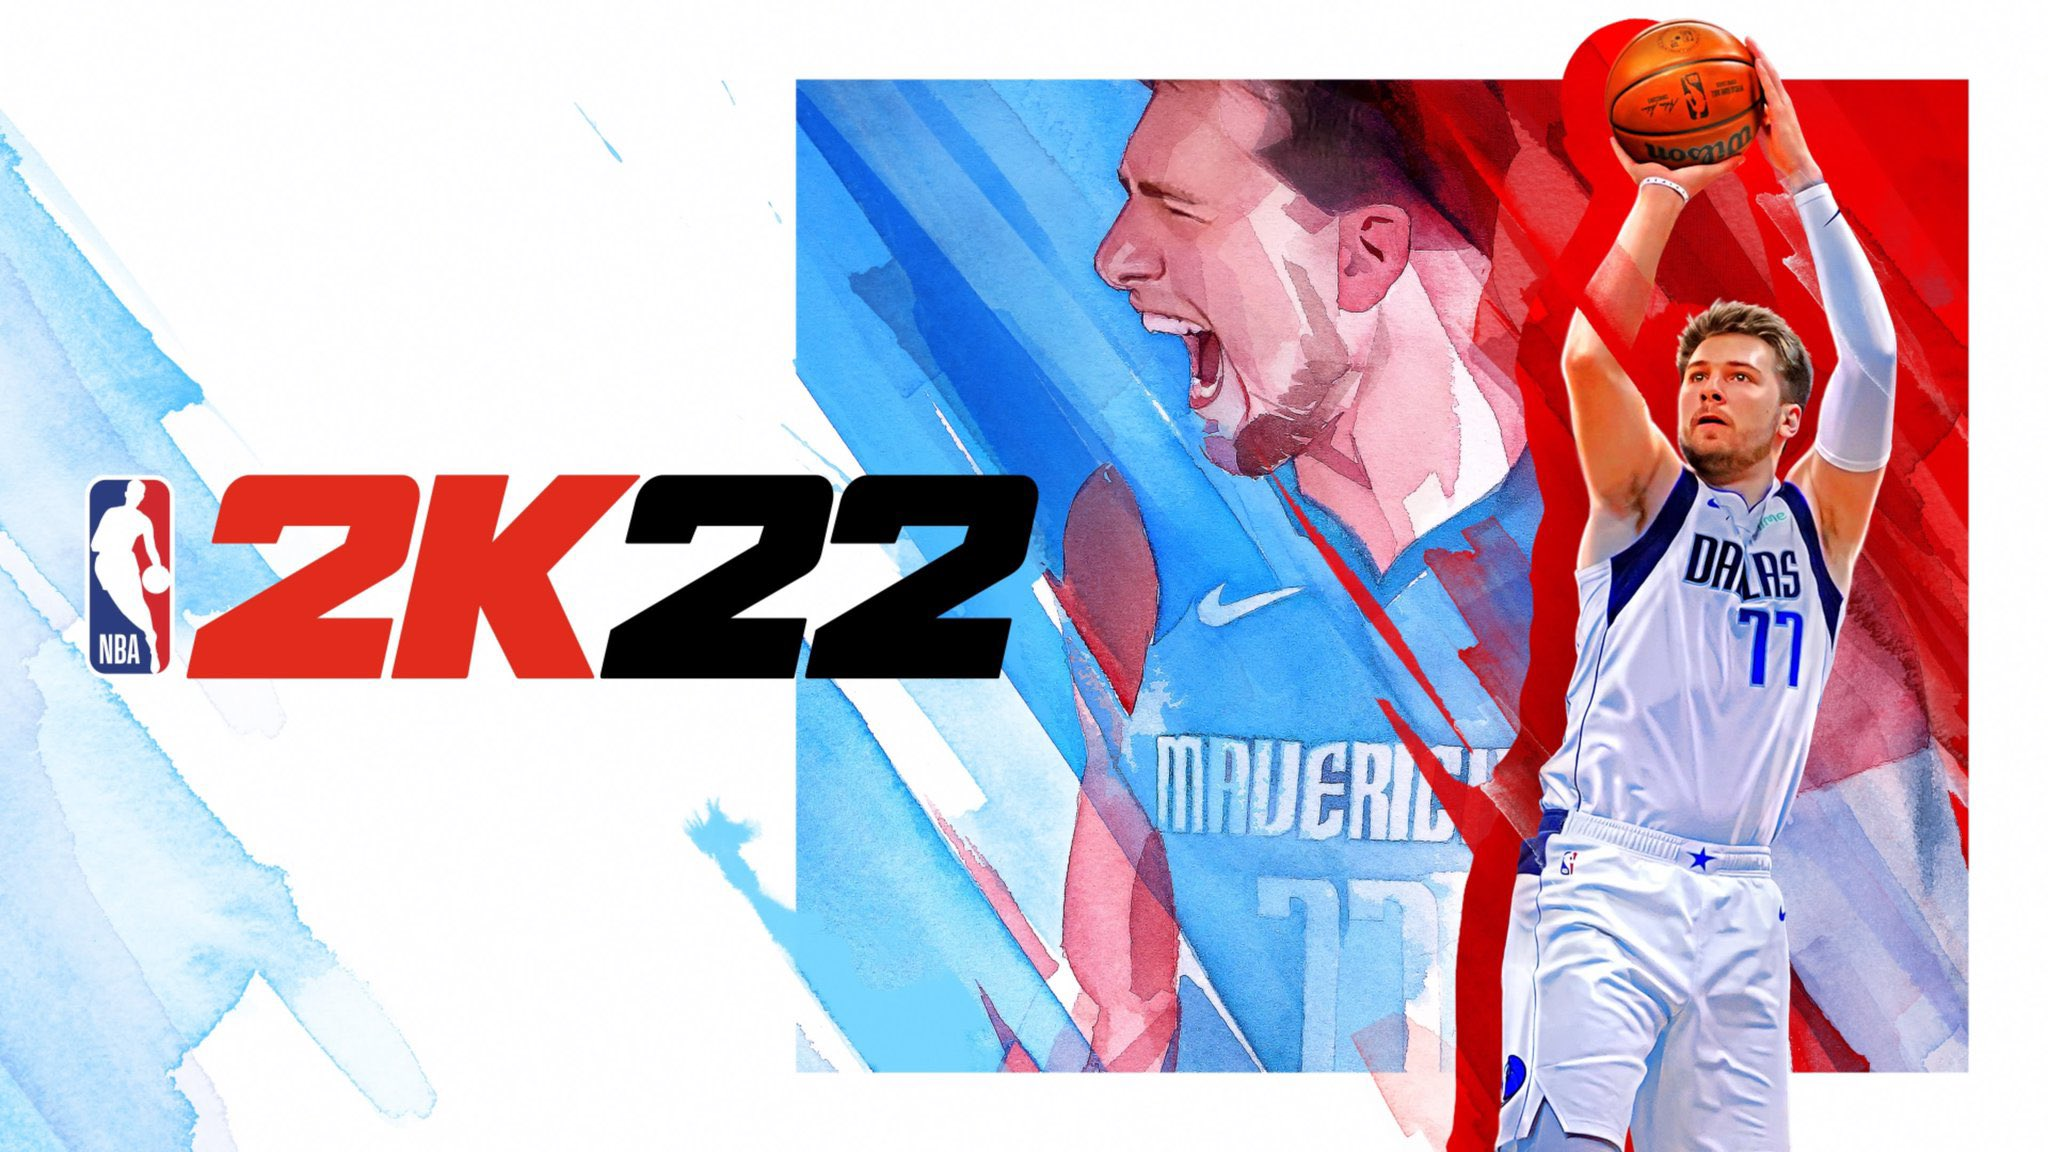 NBA 2k22 My Team Prime Time 3 And New Locked Codes: Latest Update Of NBA 2K22